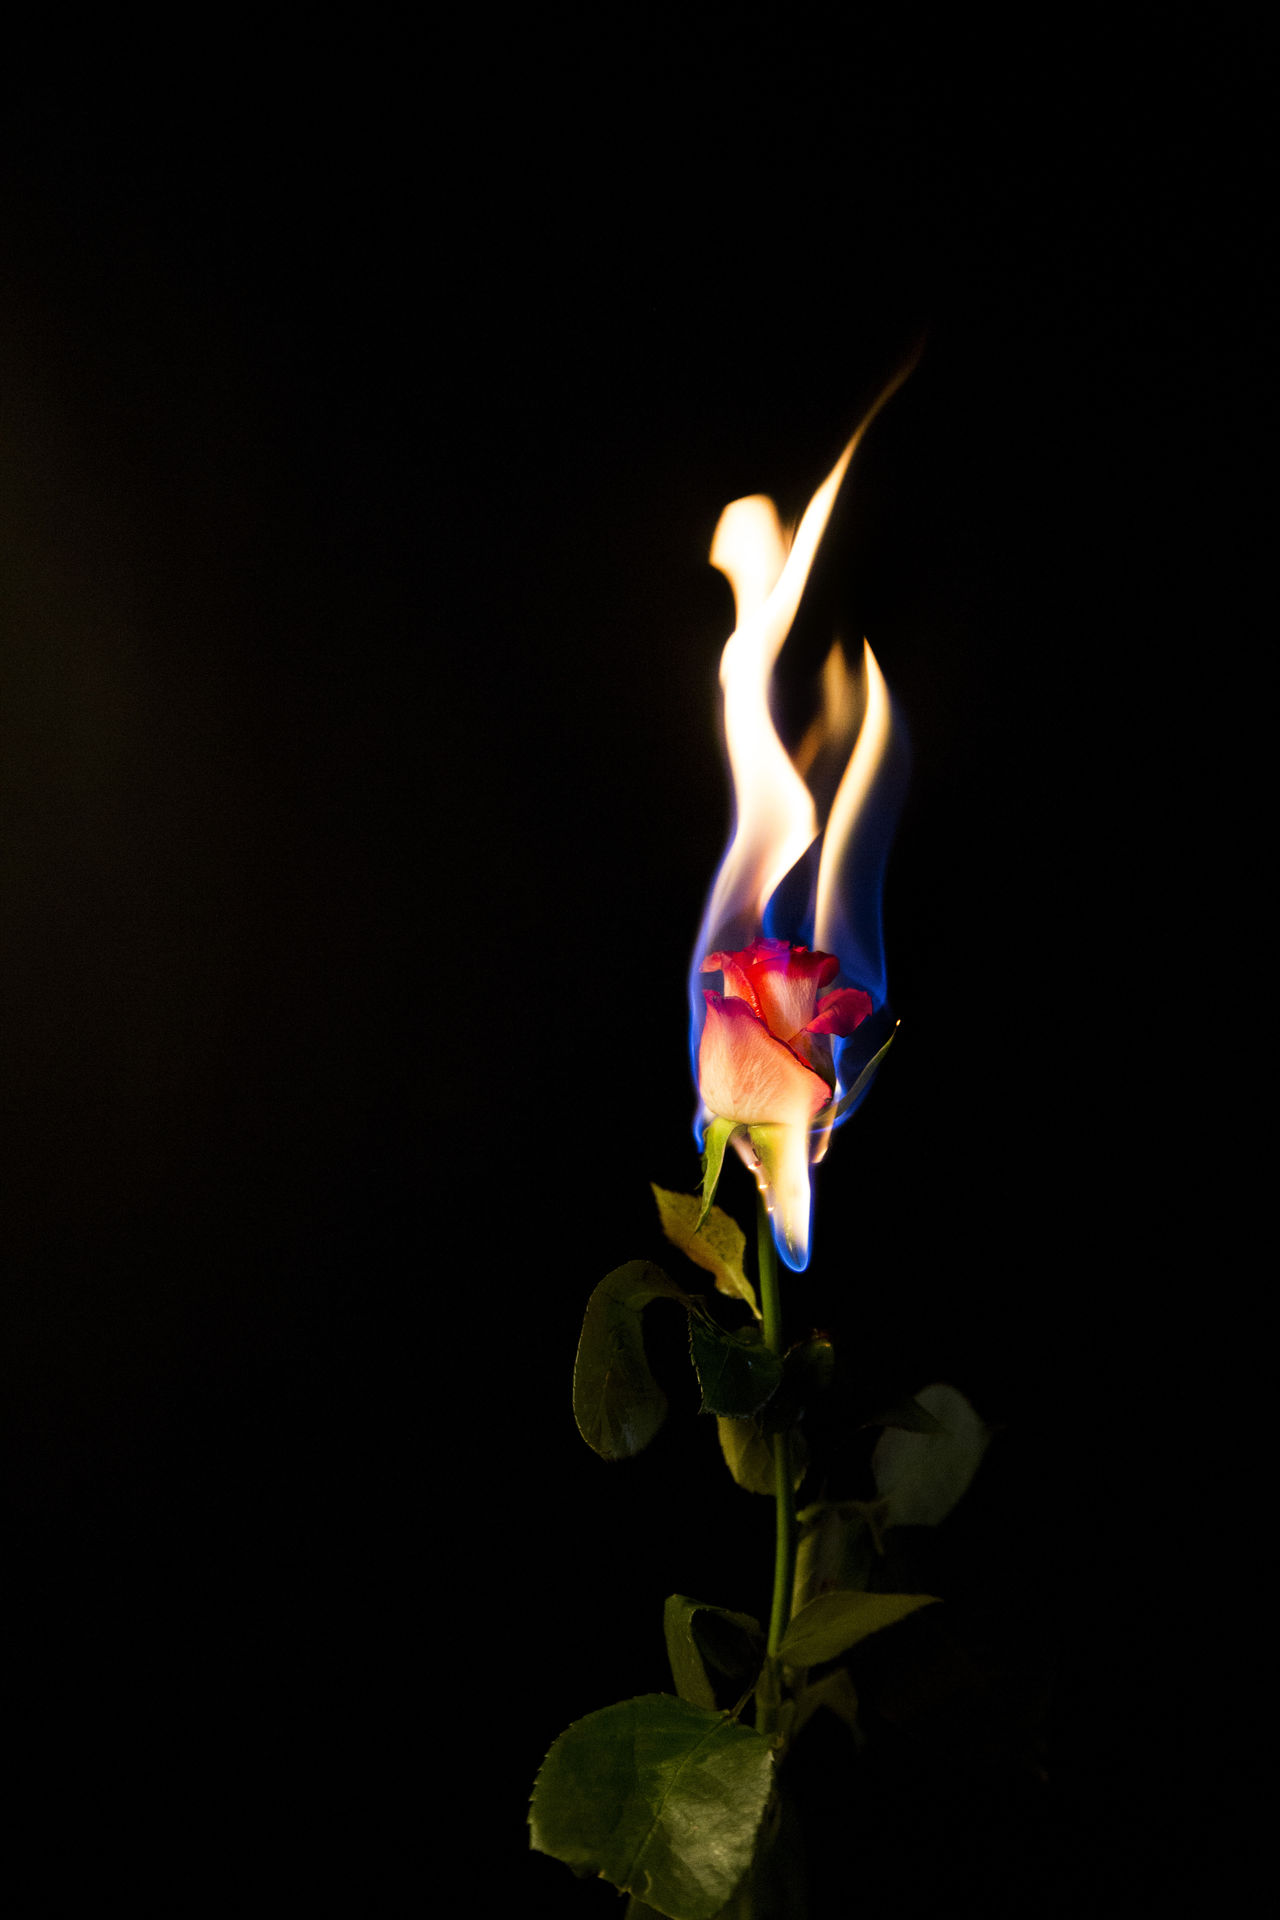 Black Background Nature Fire Flower